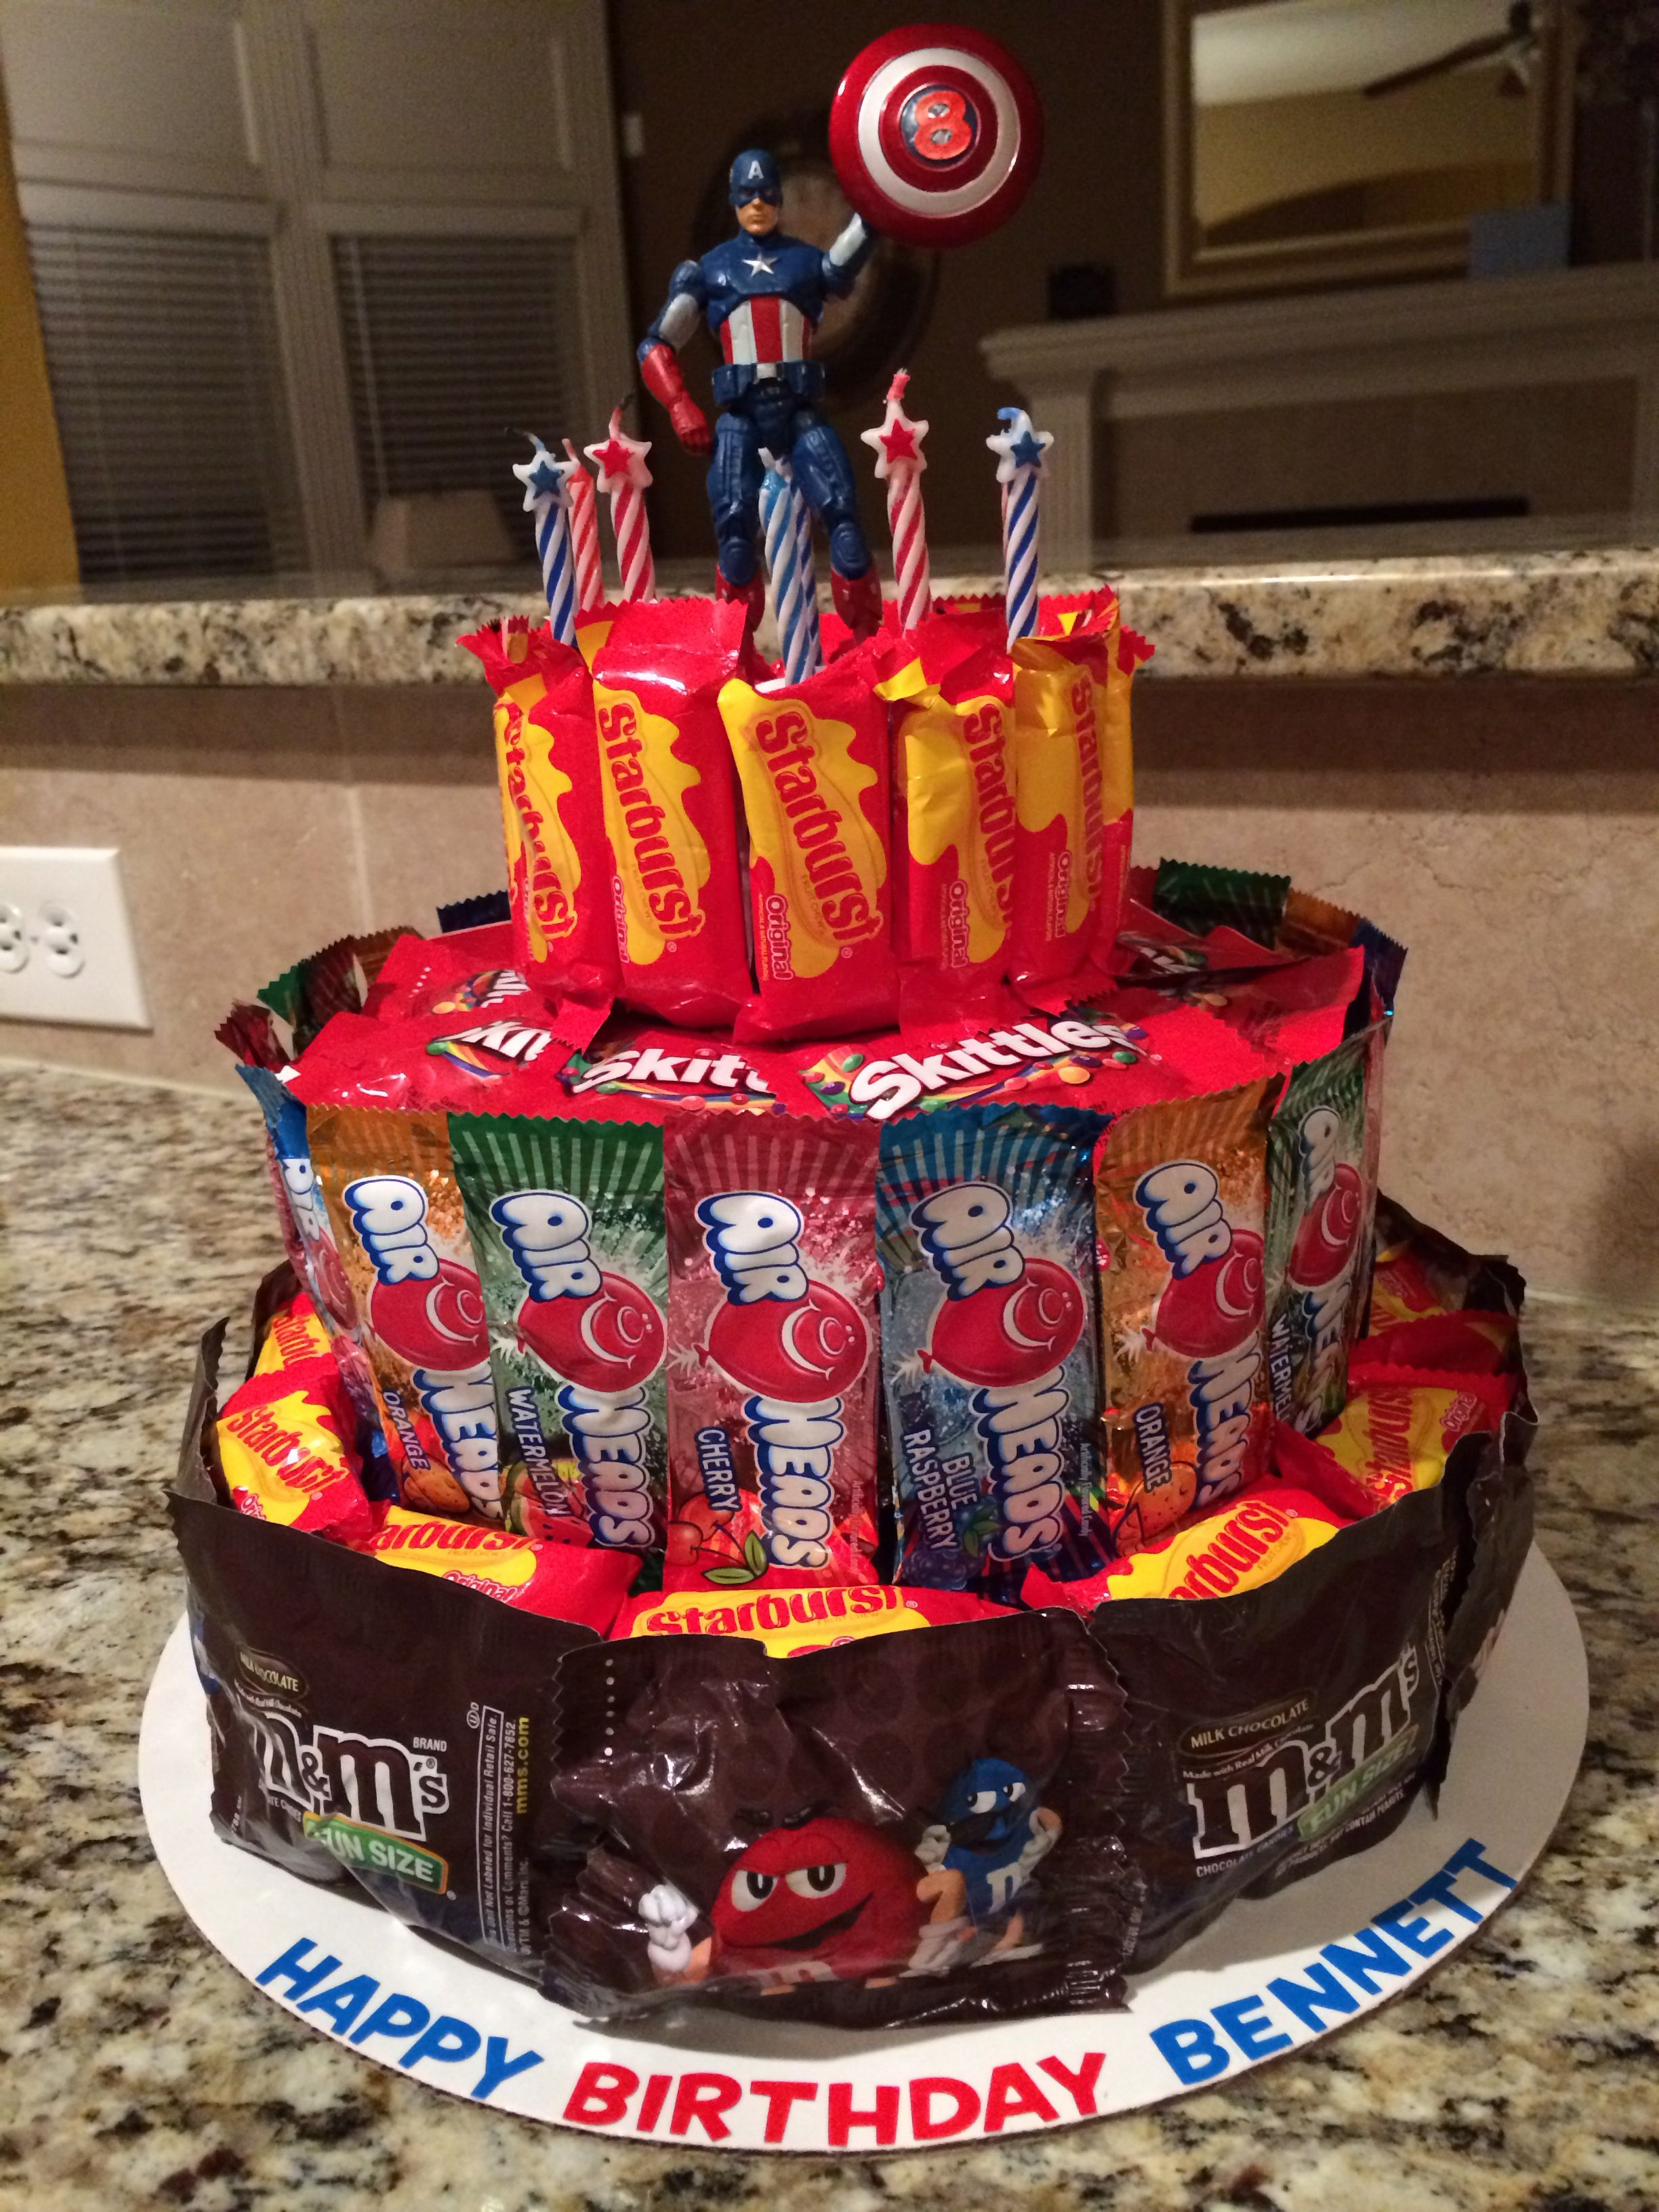 Birthday Cake Made Out Of Candy For A Movie Theater Birthday Kid